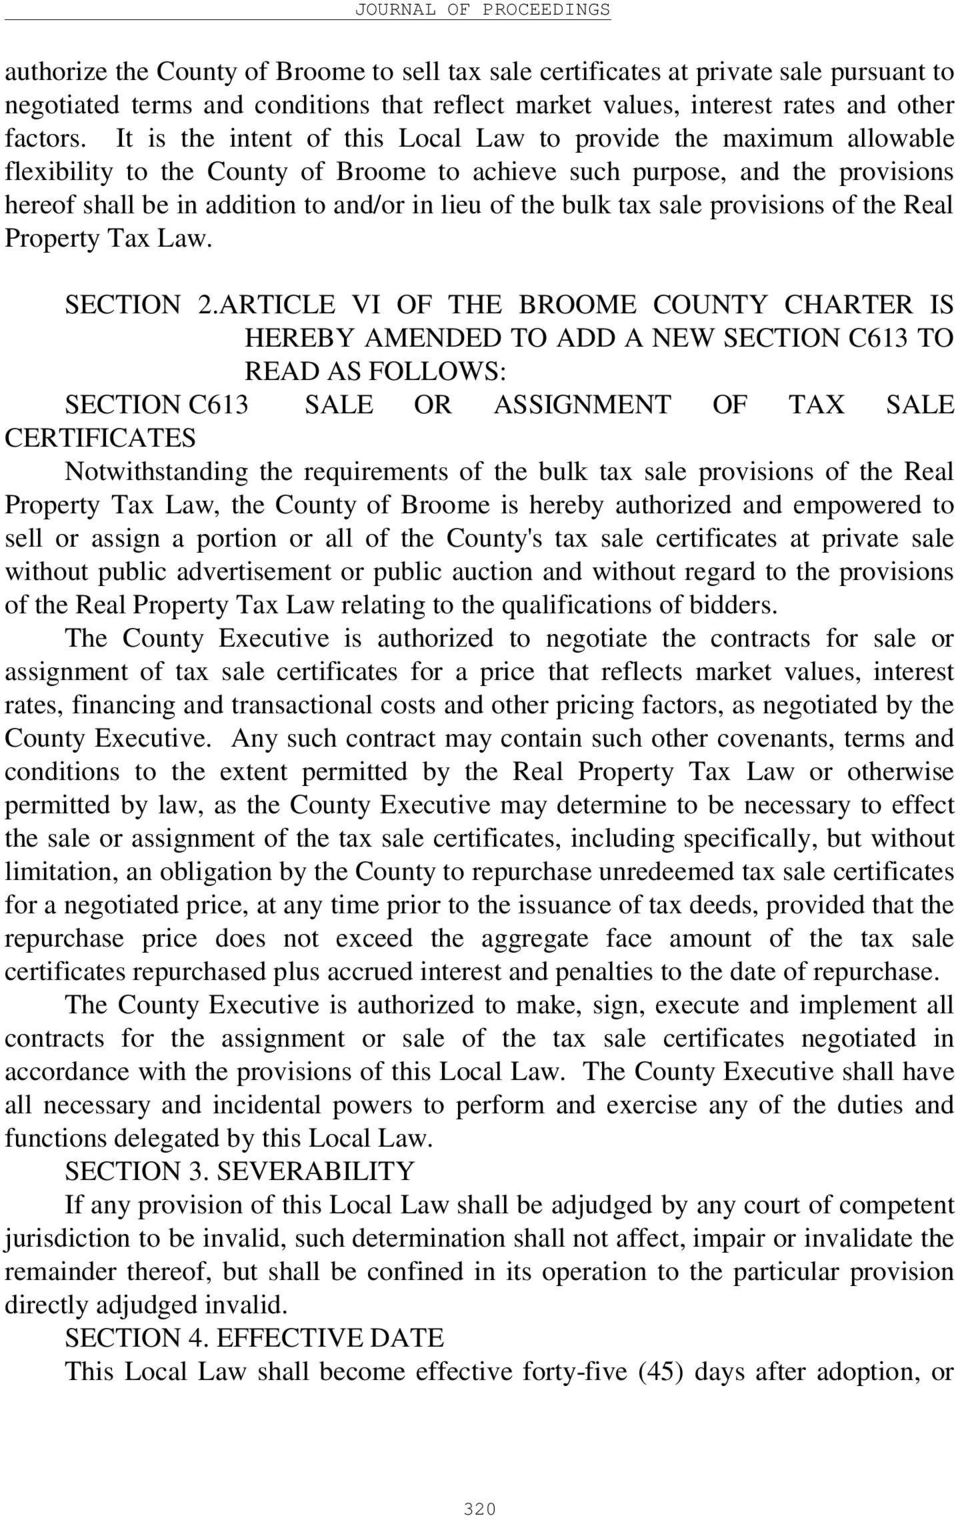 the bulk tax sale provisions of the Real Property Tax Law. SECTION 2.